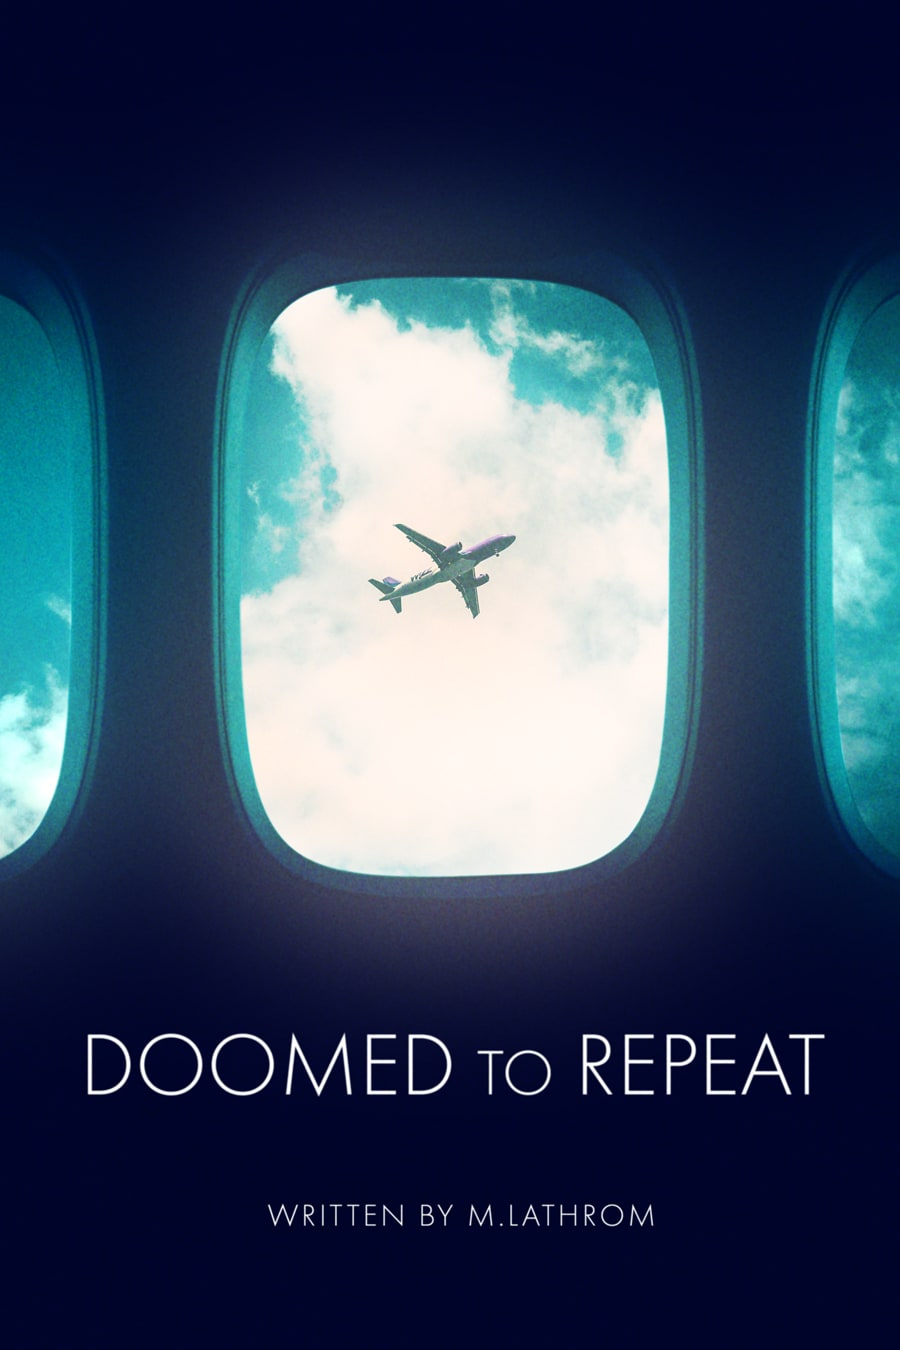 Doomed to Repeat Poster